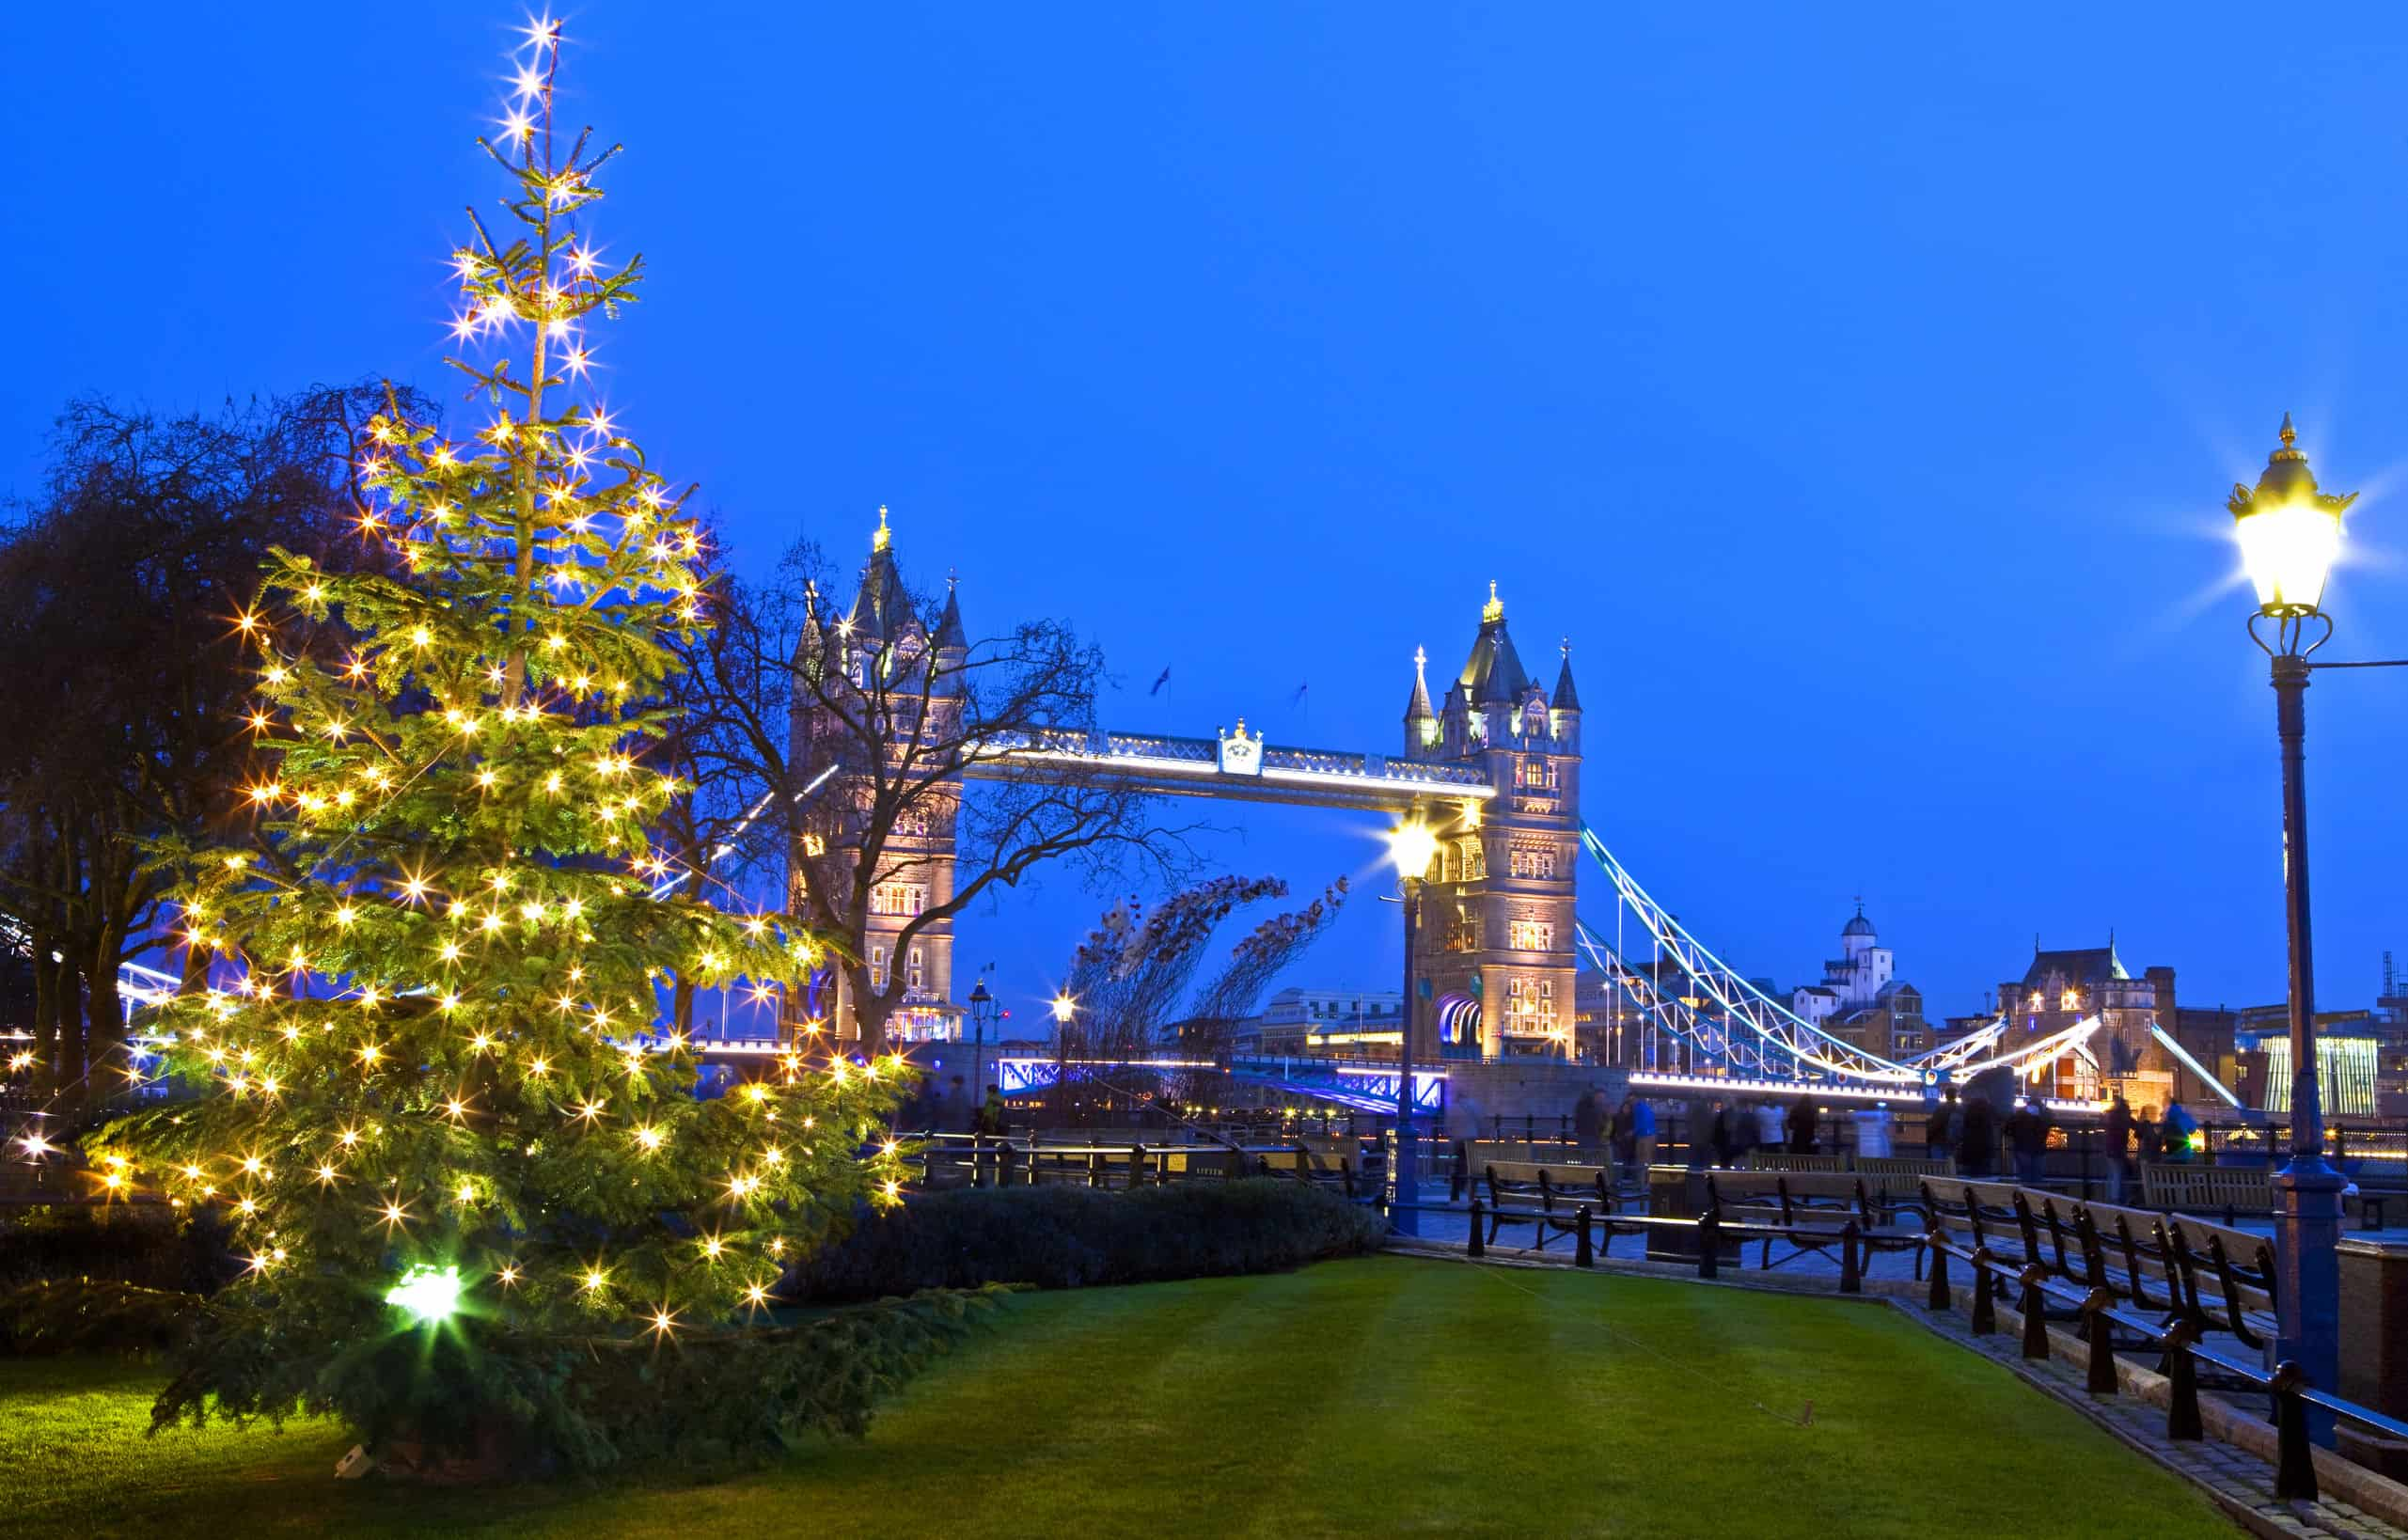 34634585 - a beautiful view of tower bridge in london during christmastime.